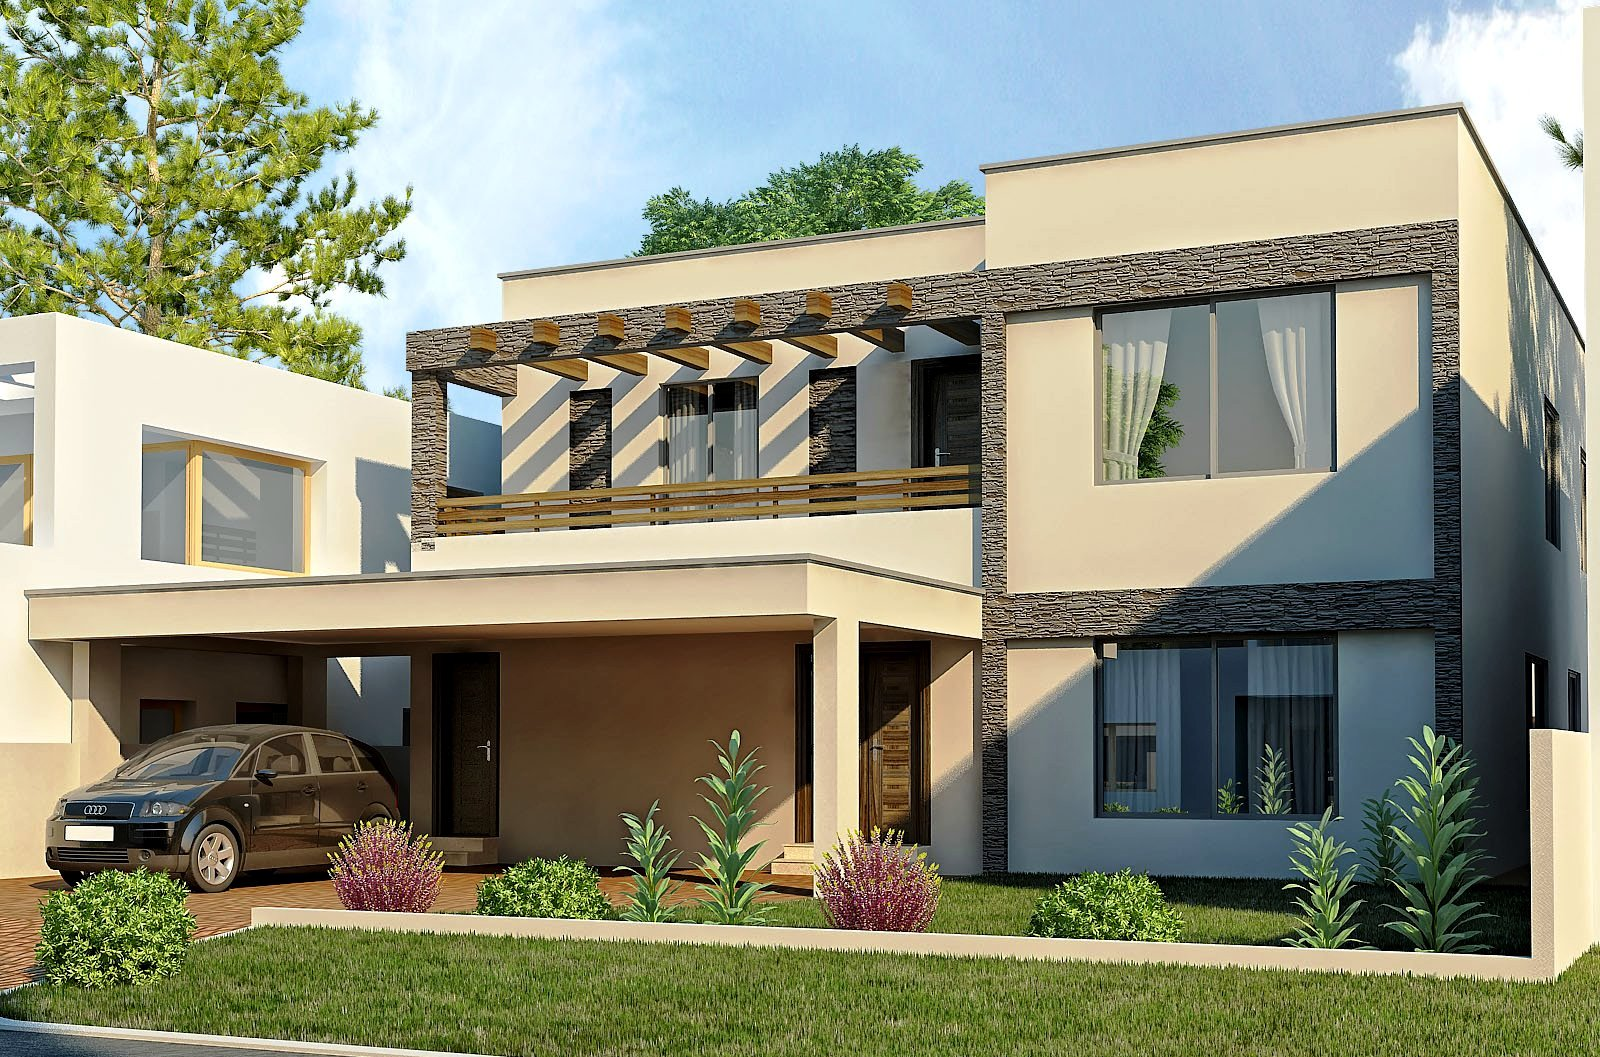 New home designs latest modern homes exterior designs views for House designs